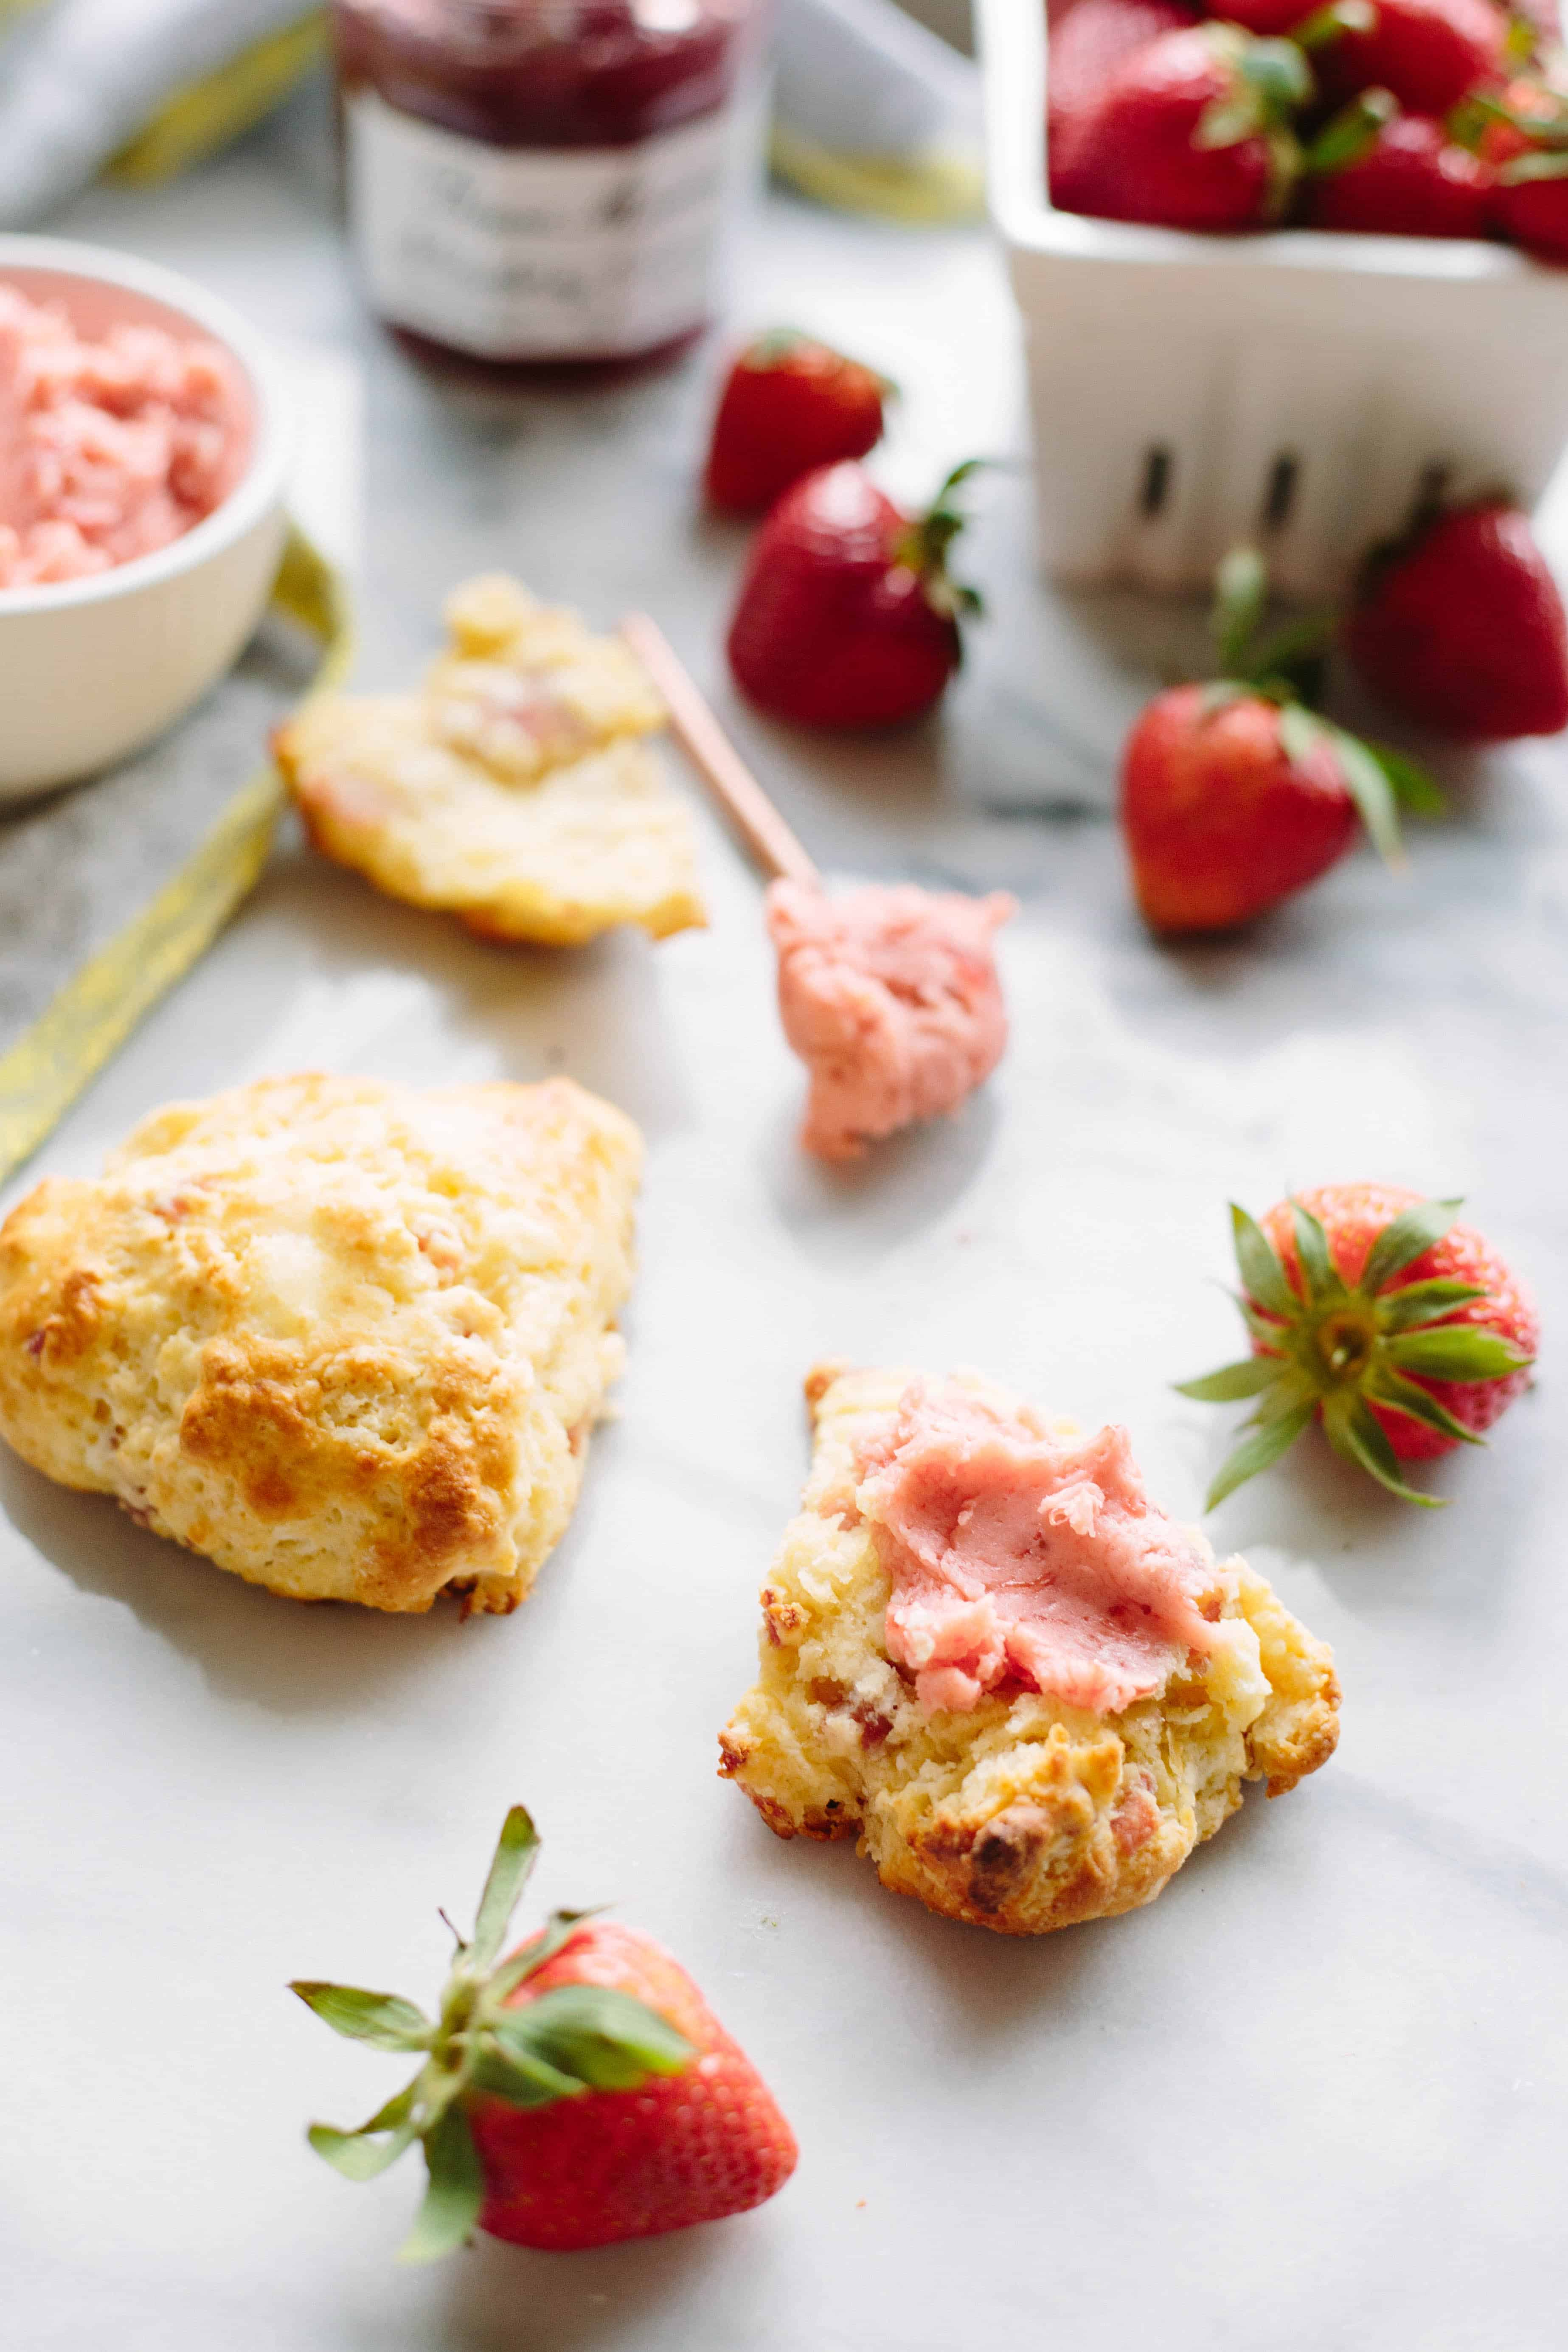 A split open scone spread with strawberry butter.